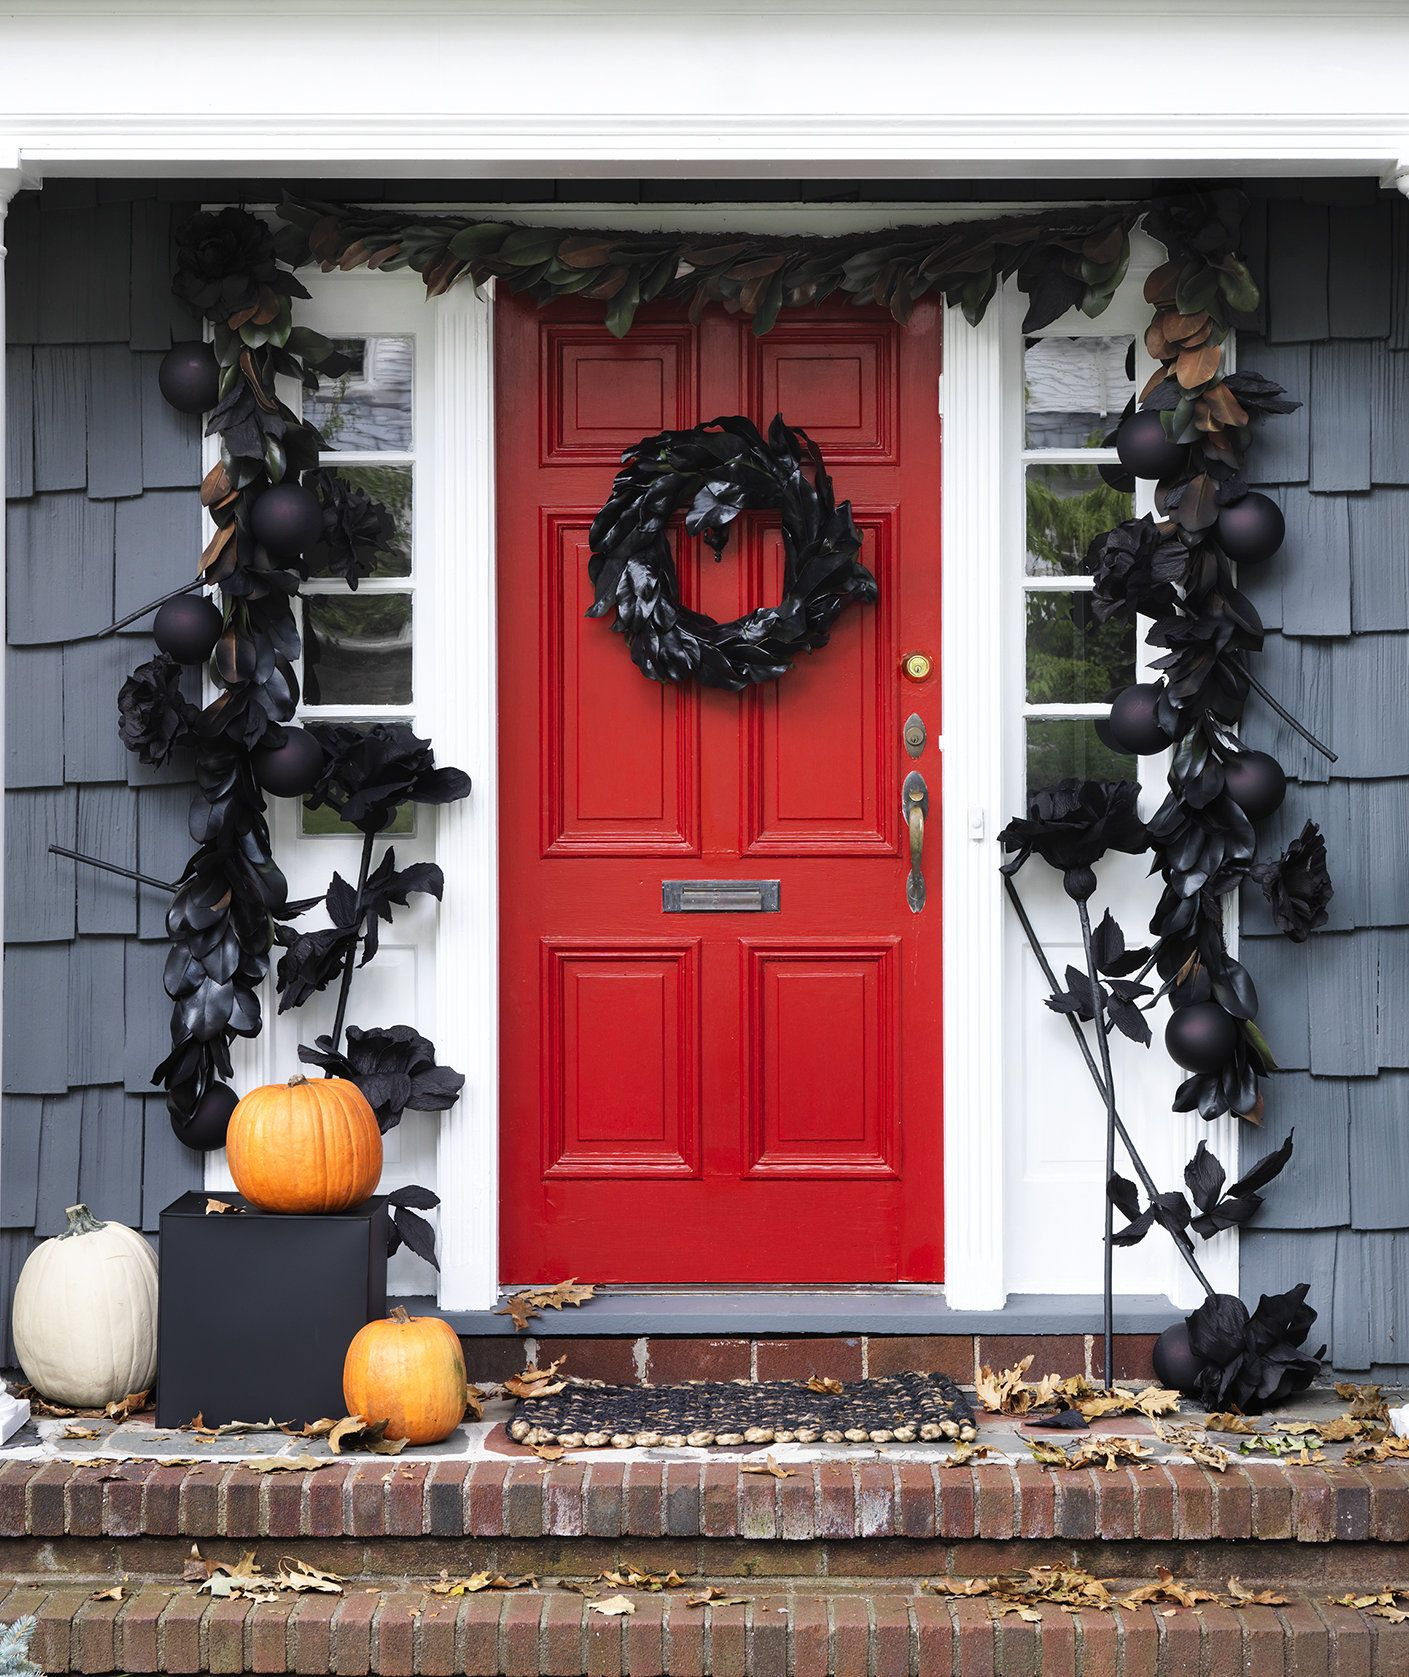 Spooky Halloween Decorations for Your Front Door Bleak house - Front Door Halloween Decorations